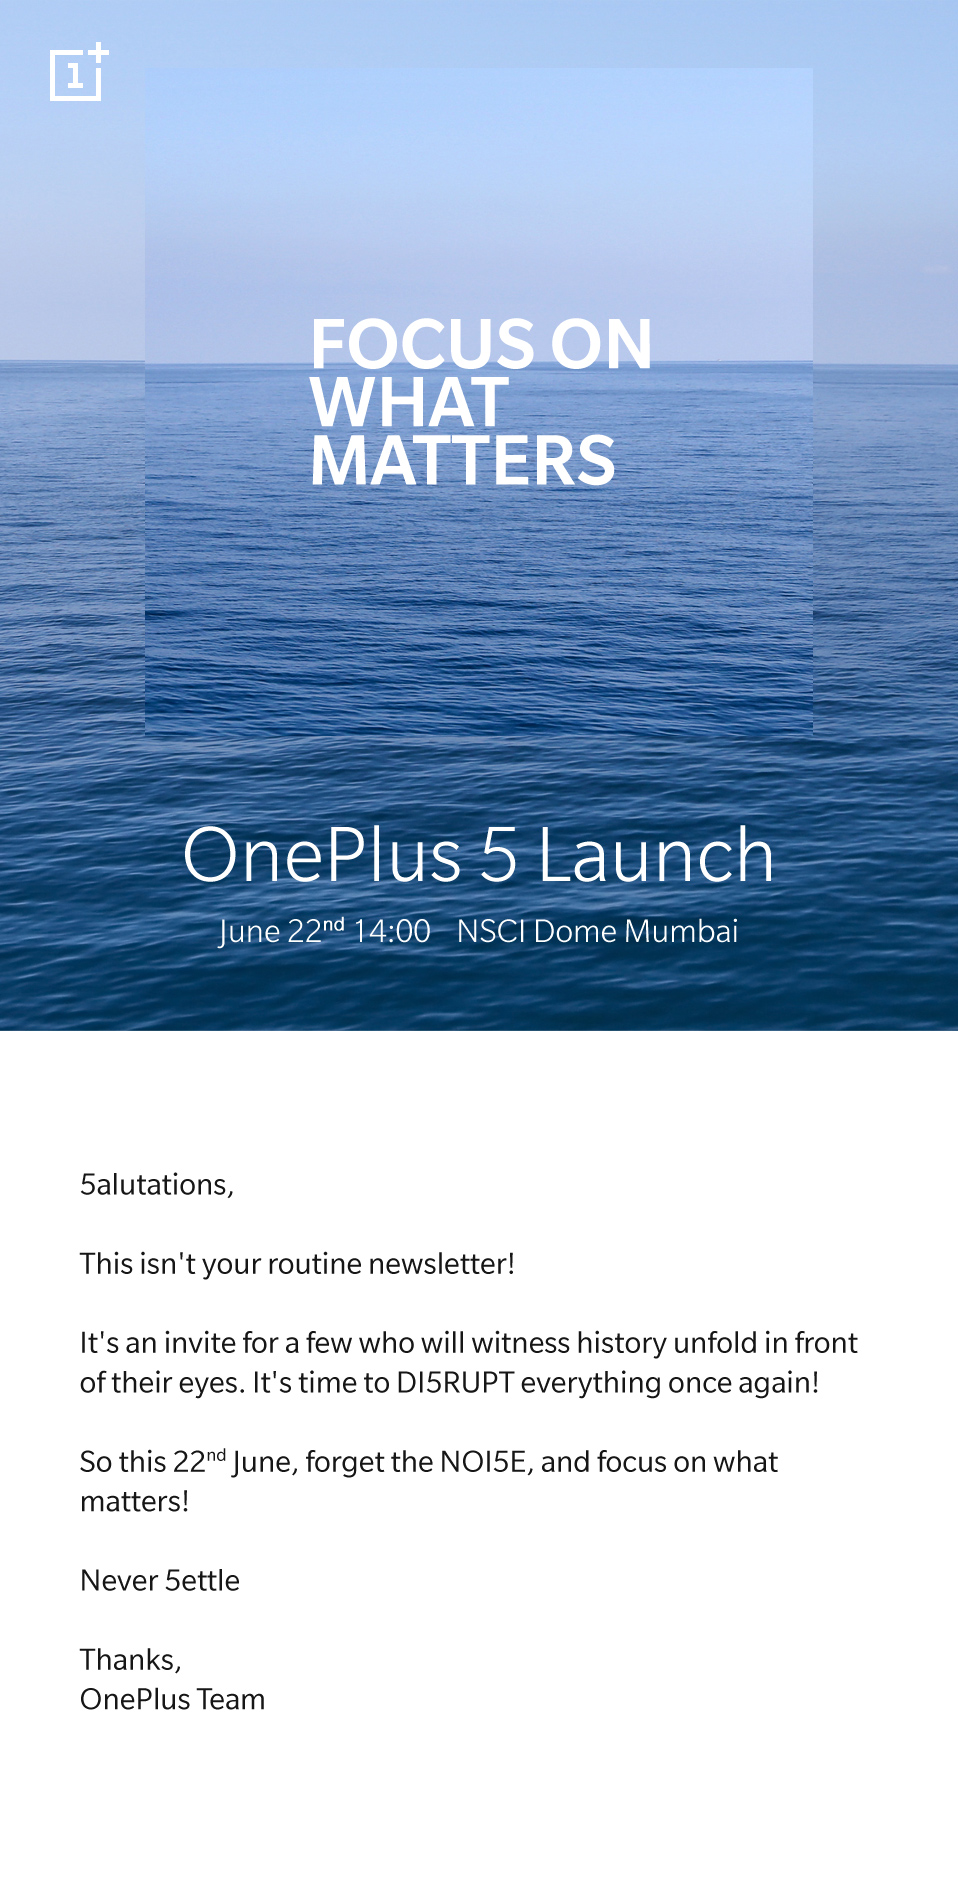 OnePlus 5 Launch Event Invitation Letter